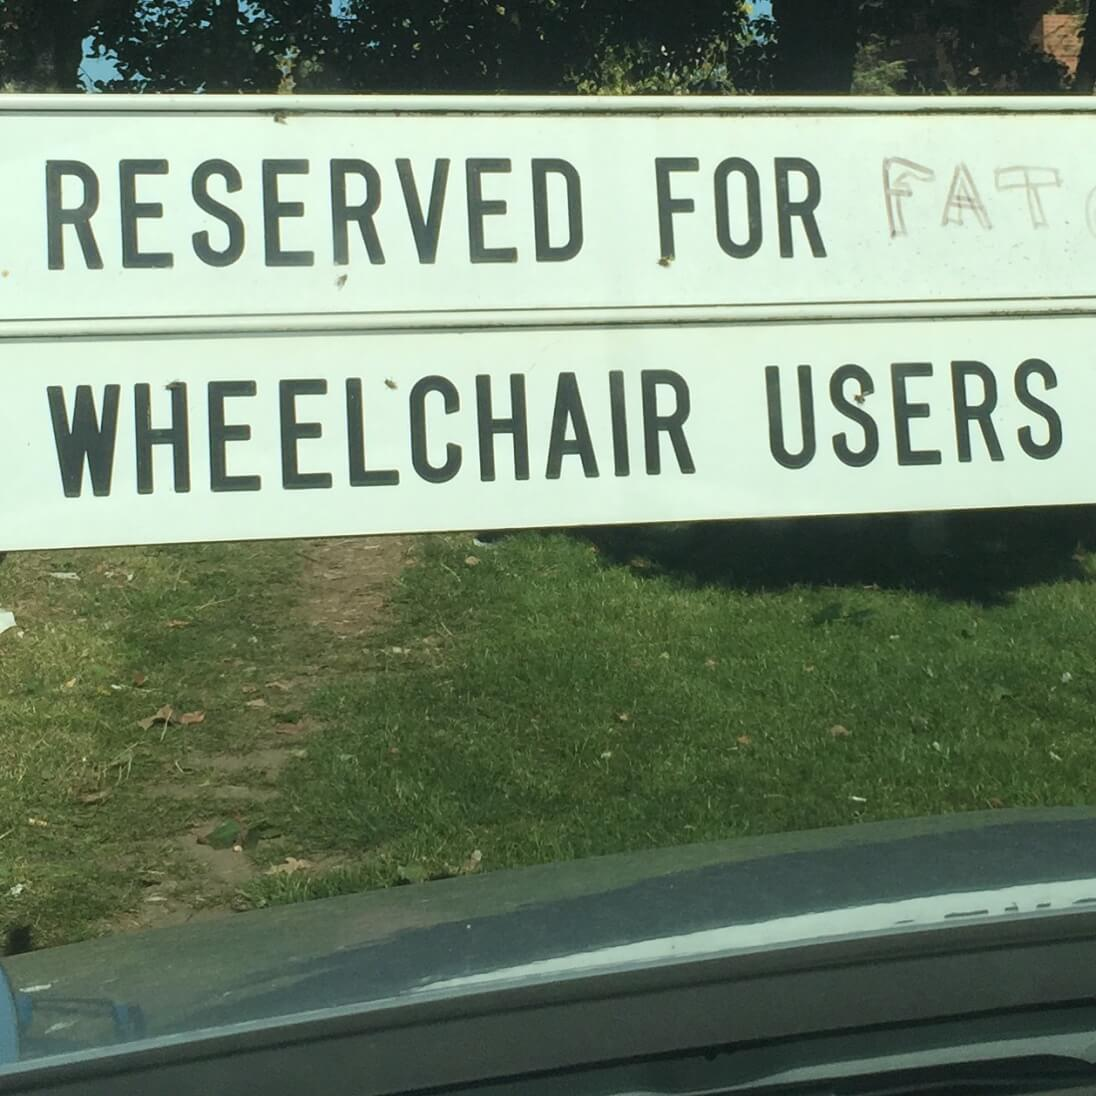 To the Person Who Wrote 'Fat' on a Parking Spot for Wheelchair Users